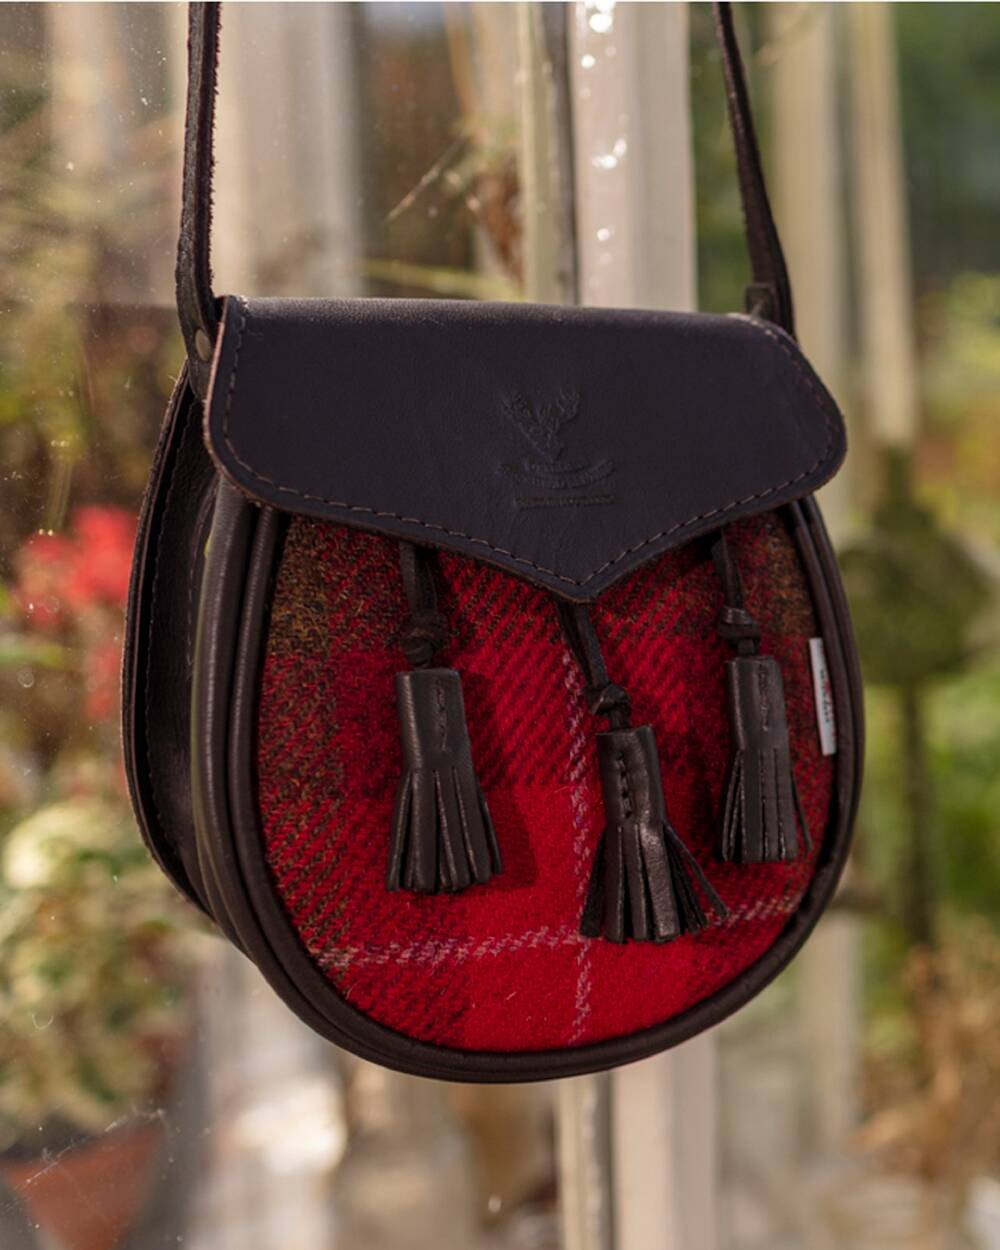 A leather sporran handbag hangs from a handle. It has a red tweed middle with leather tassels.